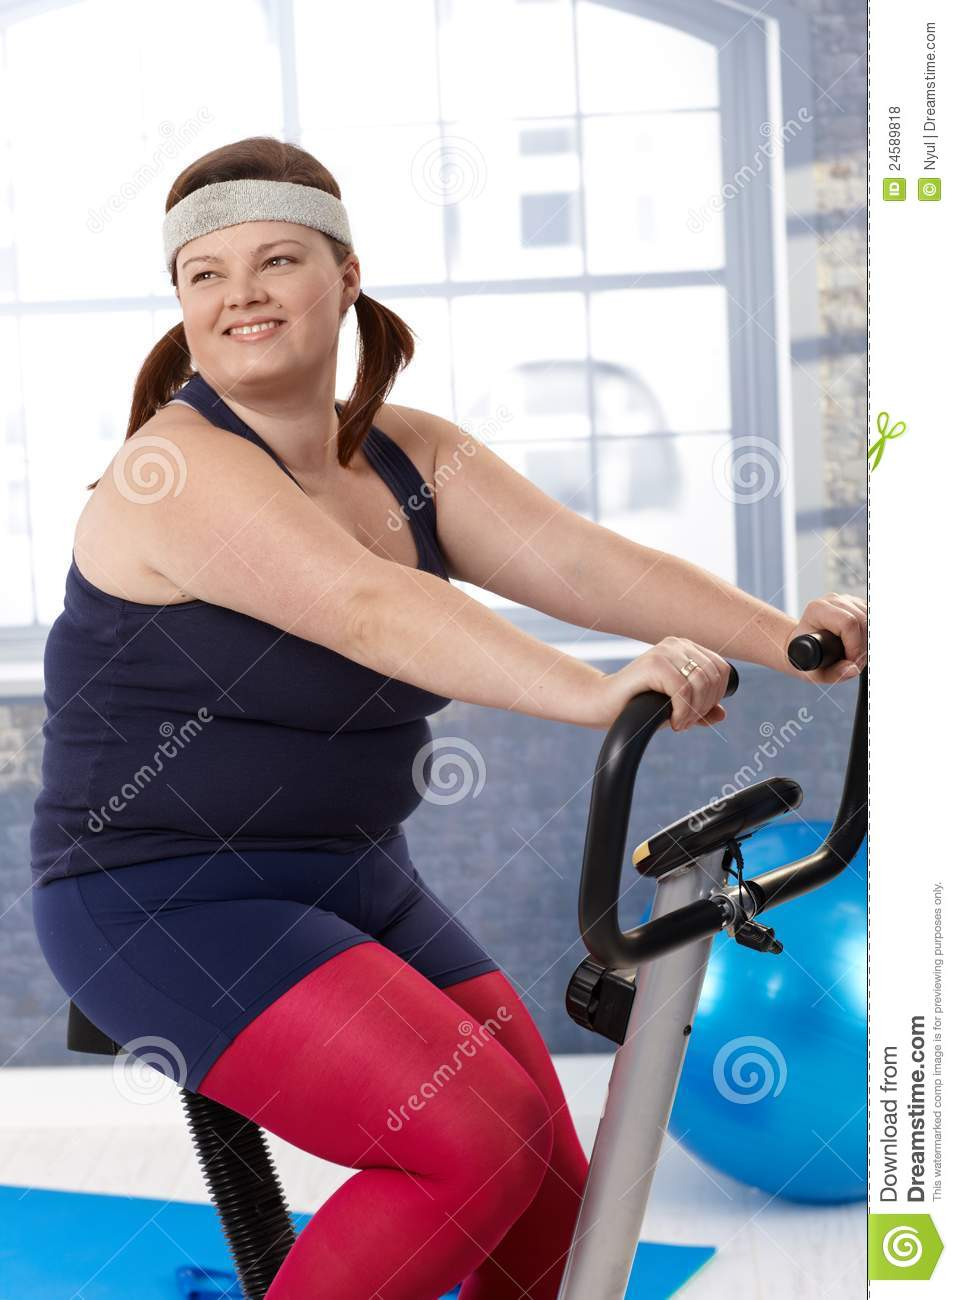 Fat woman on exercise bike